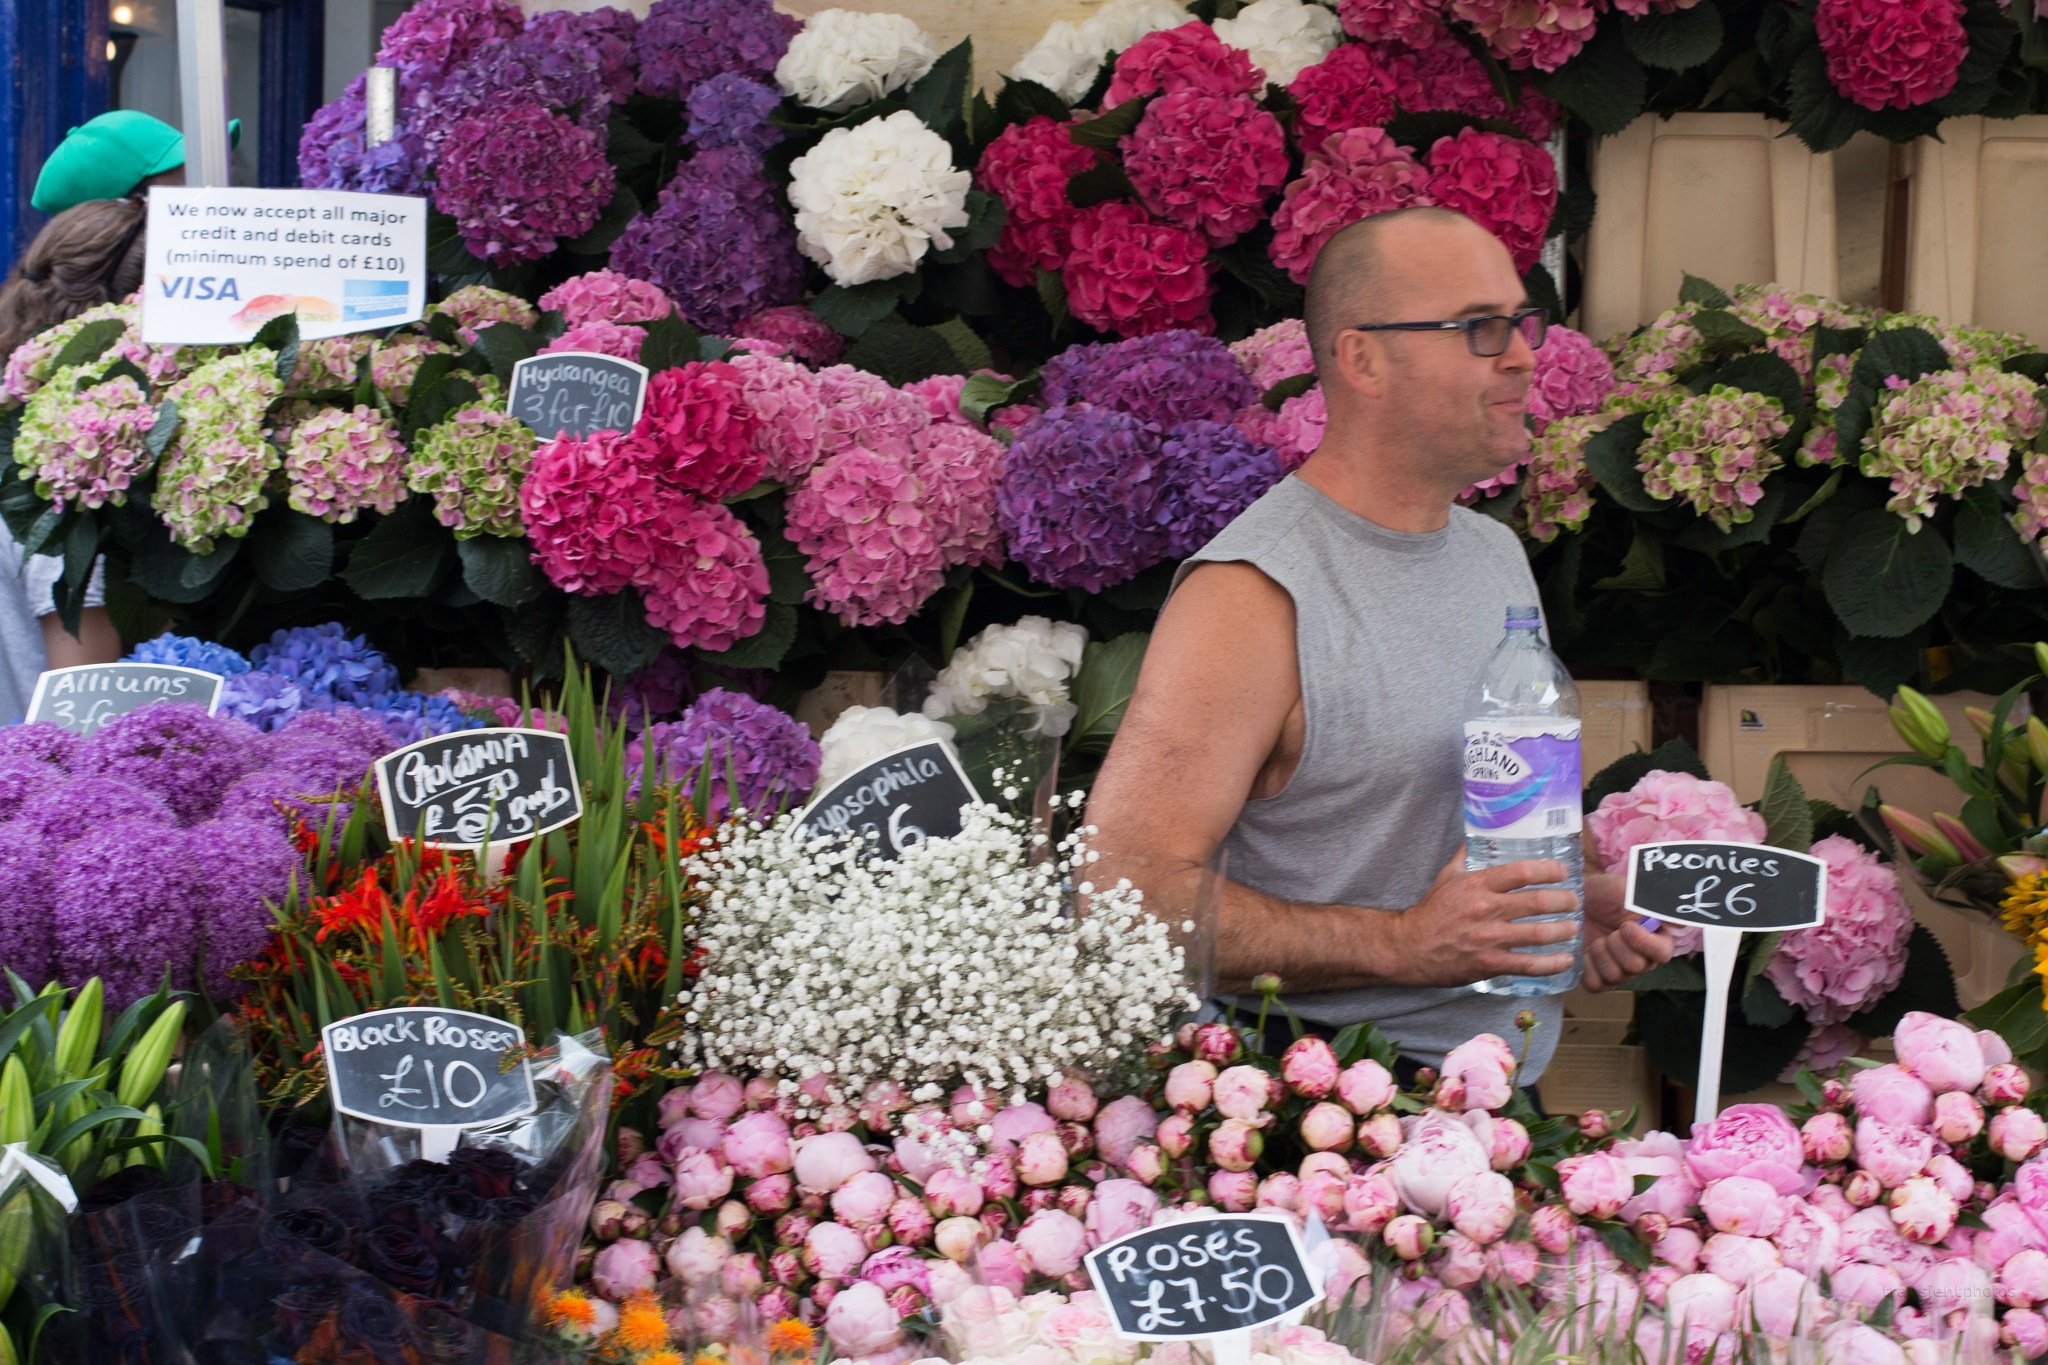 Columbia Road Flower Market by Chas McMaster